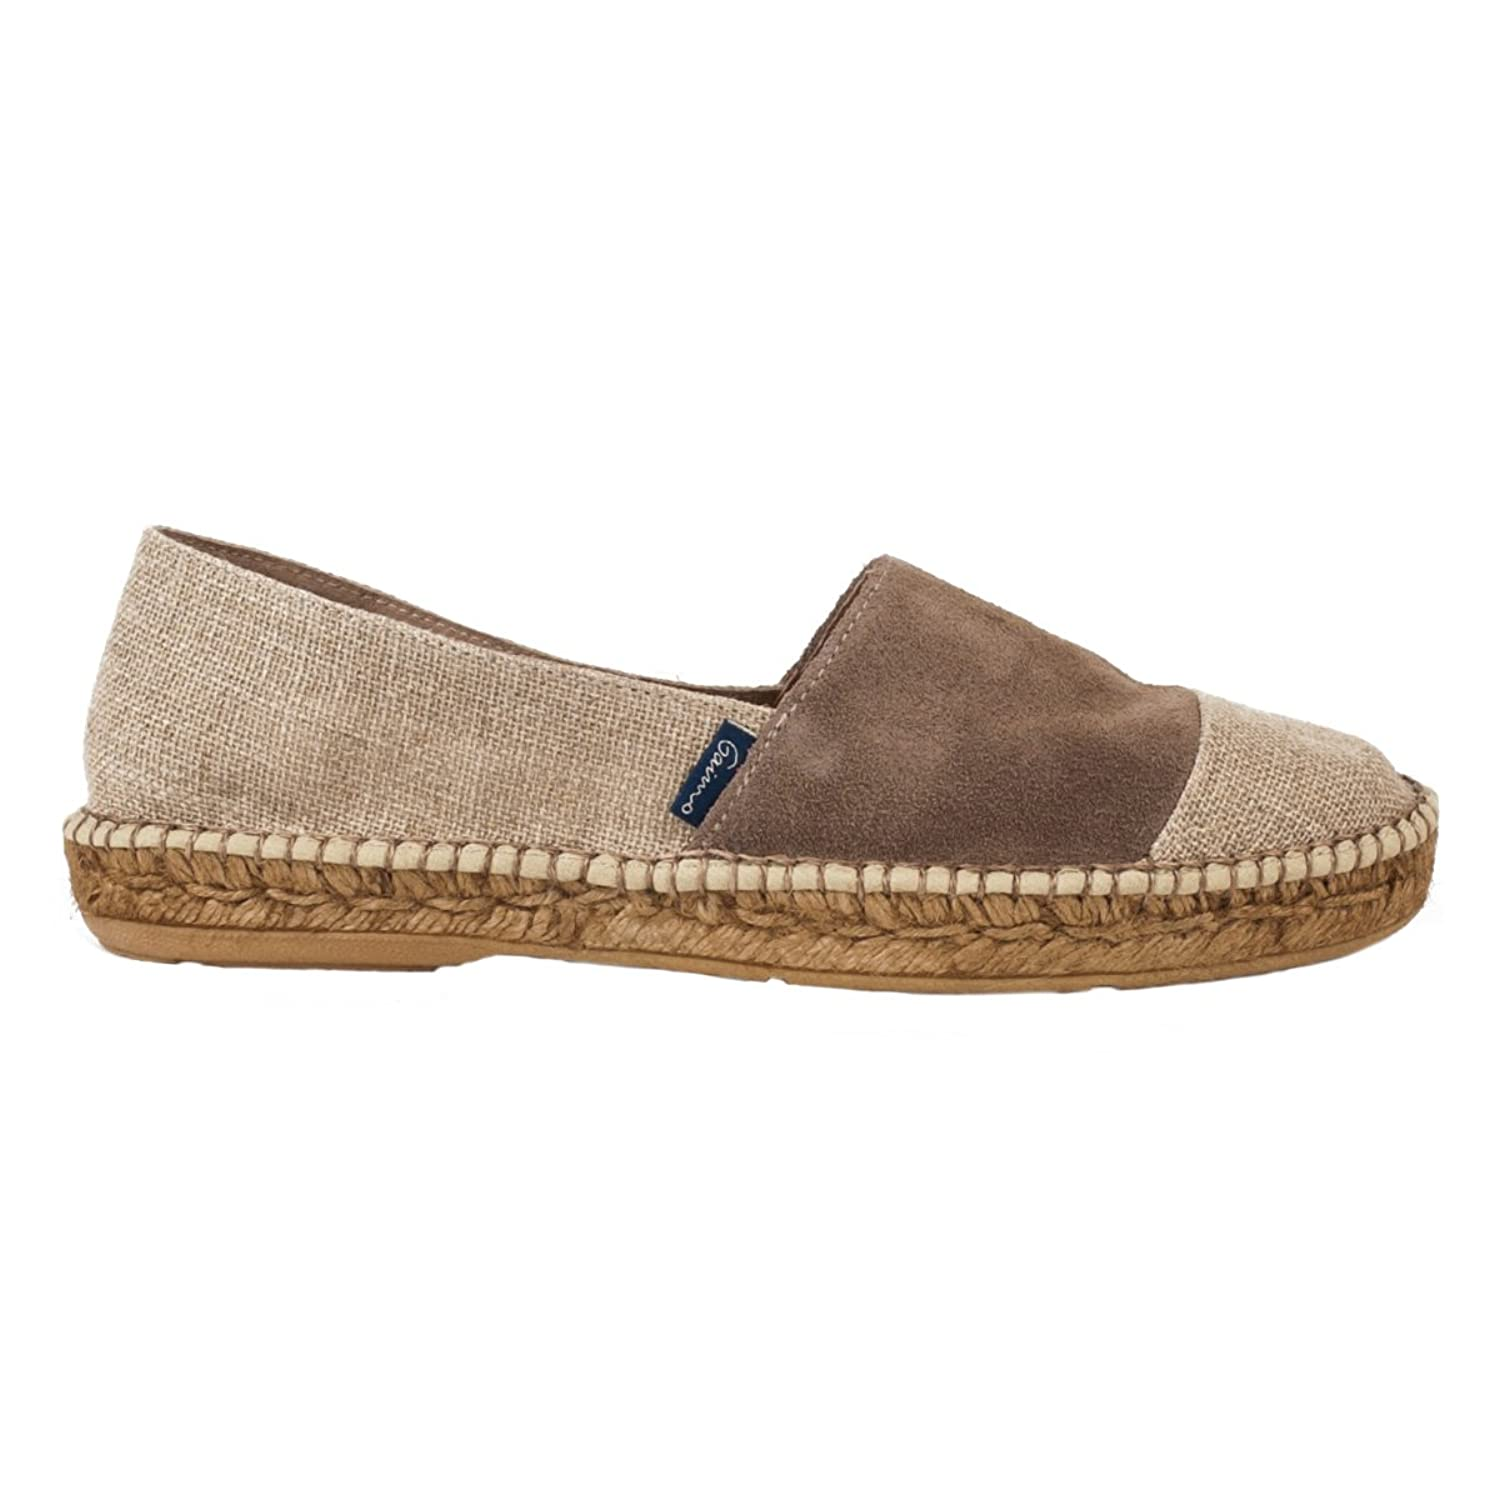 3e81991e5c89 Gaimo Men s Espadrilles Beige Beige  Amazon.co.uk  Shoes   Bags